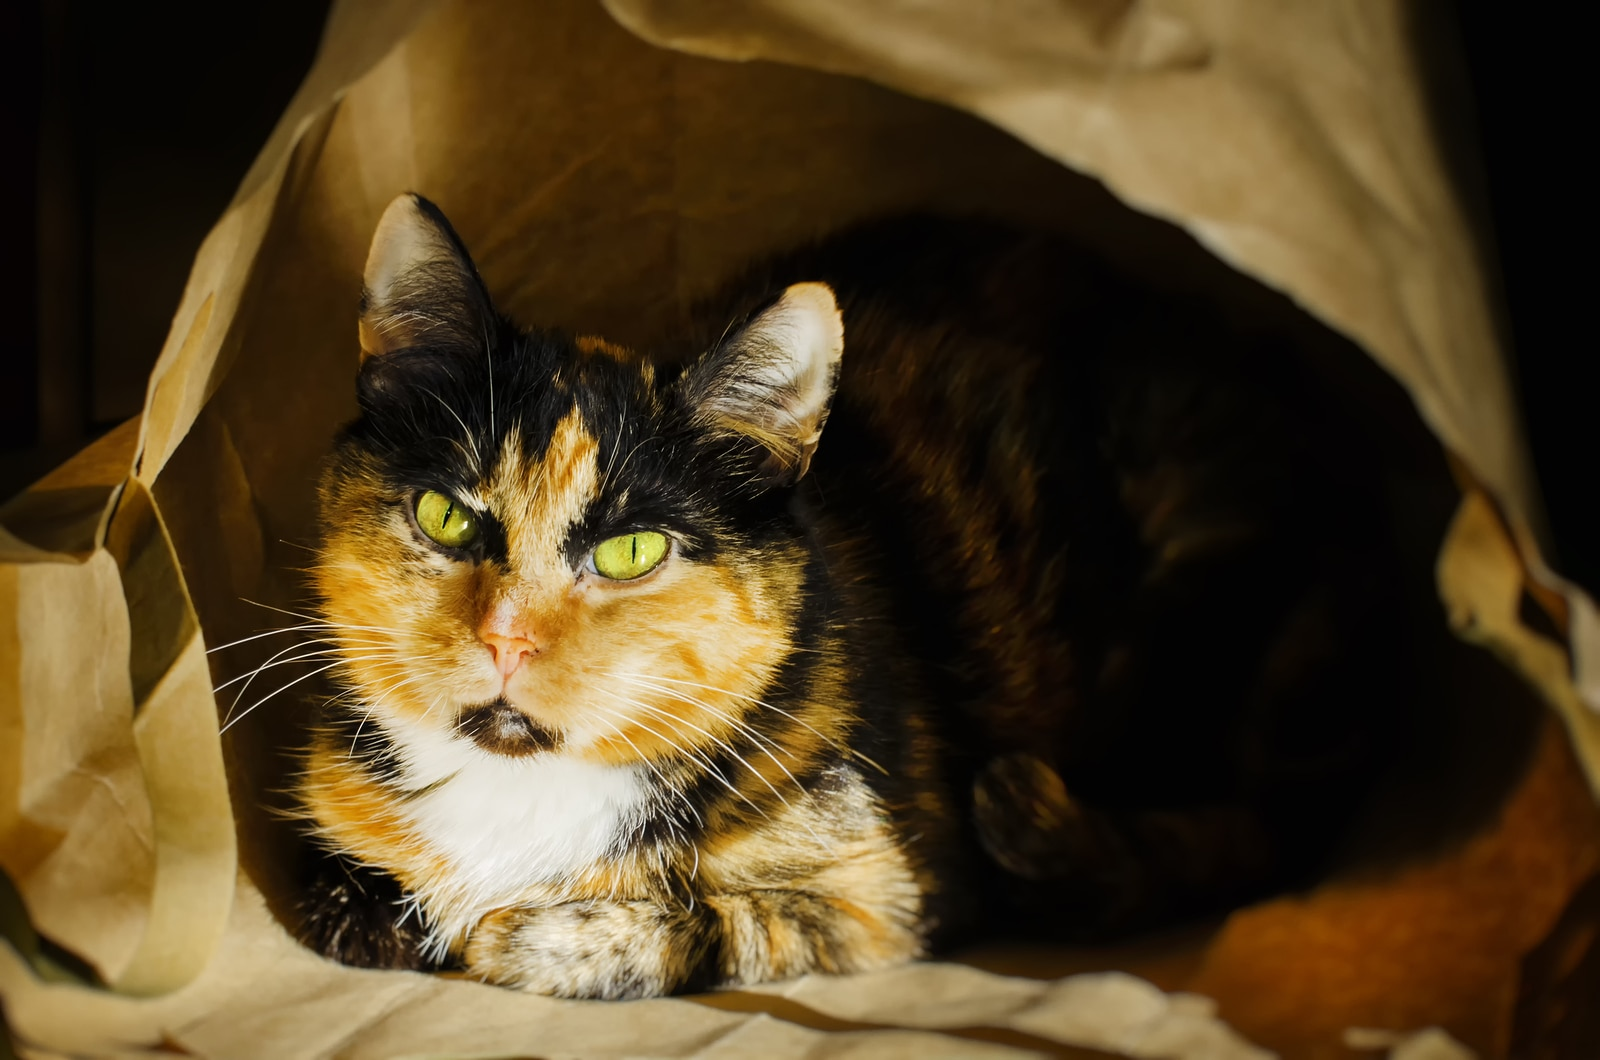 Calico cat with intense yellow eyes peering out of a brown paper bag.